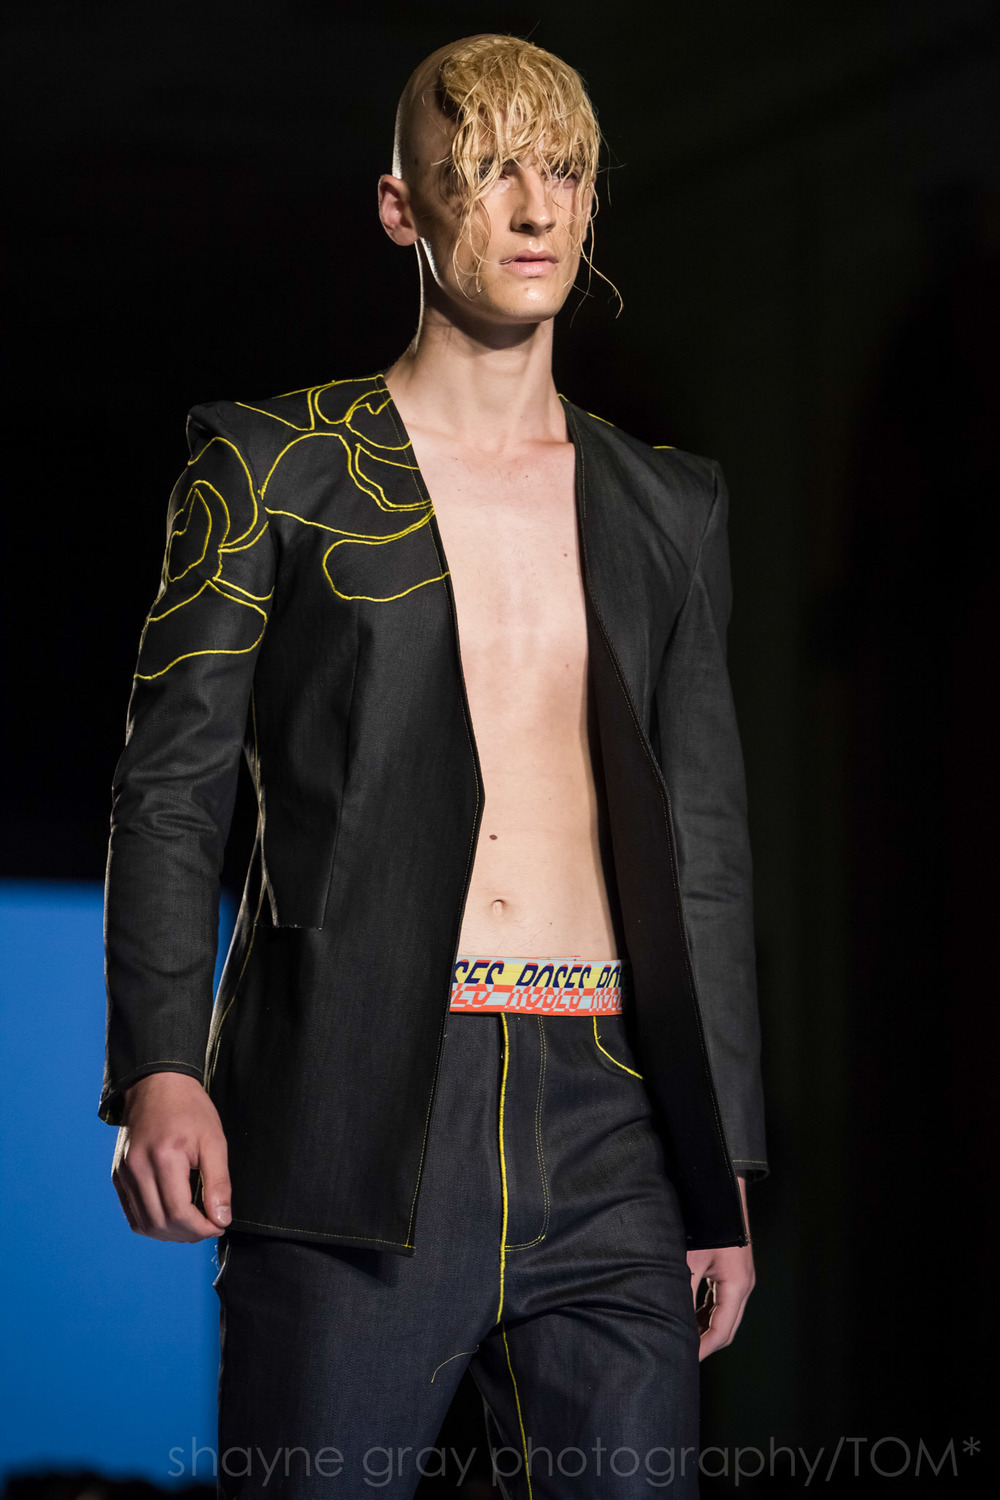 Shayne-Gray-Toronto-men's-fashion_week-TOM-benji-wzw-7074.jpg